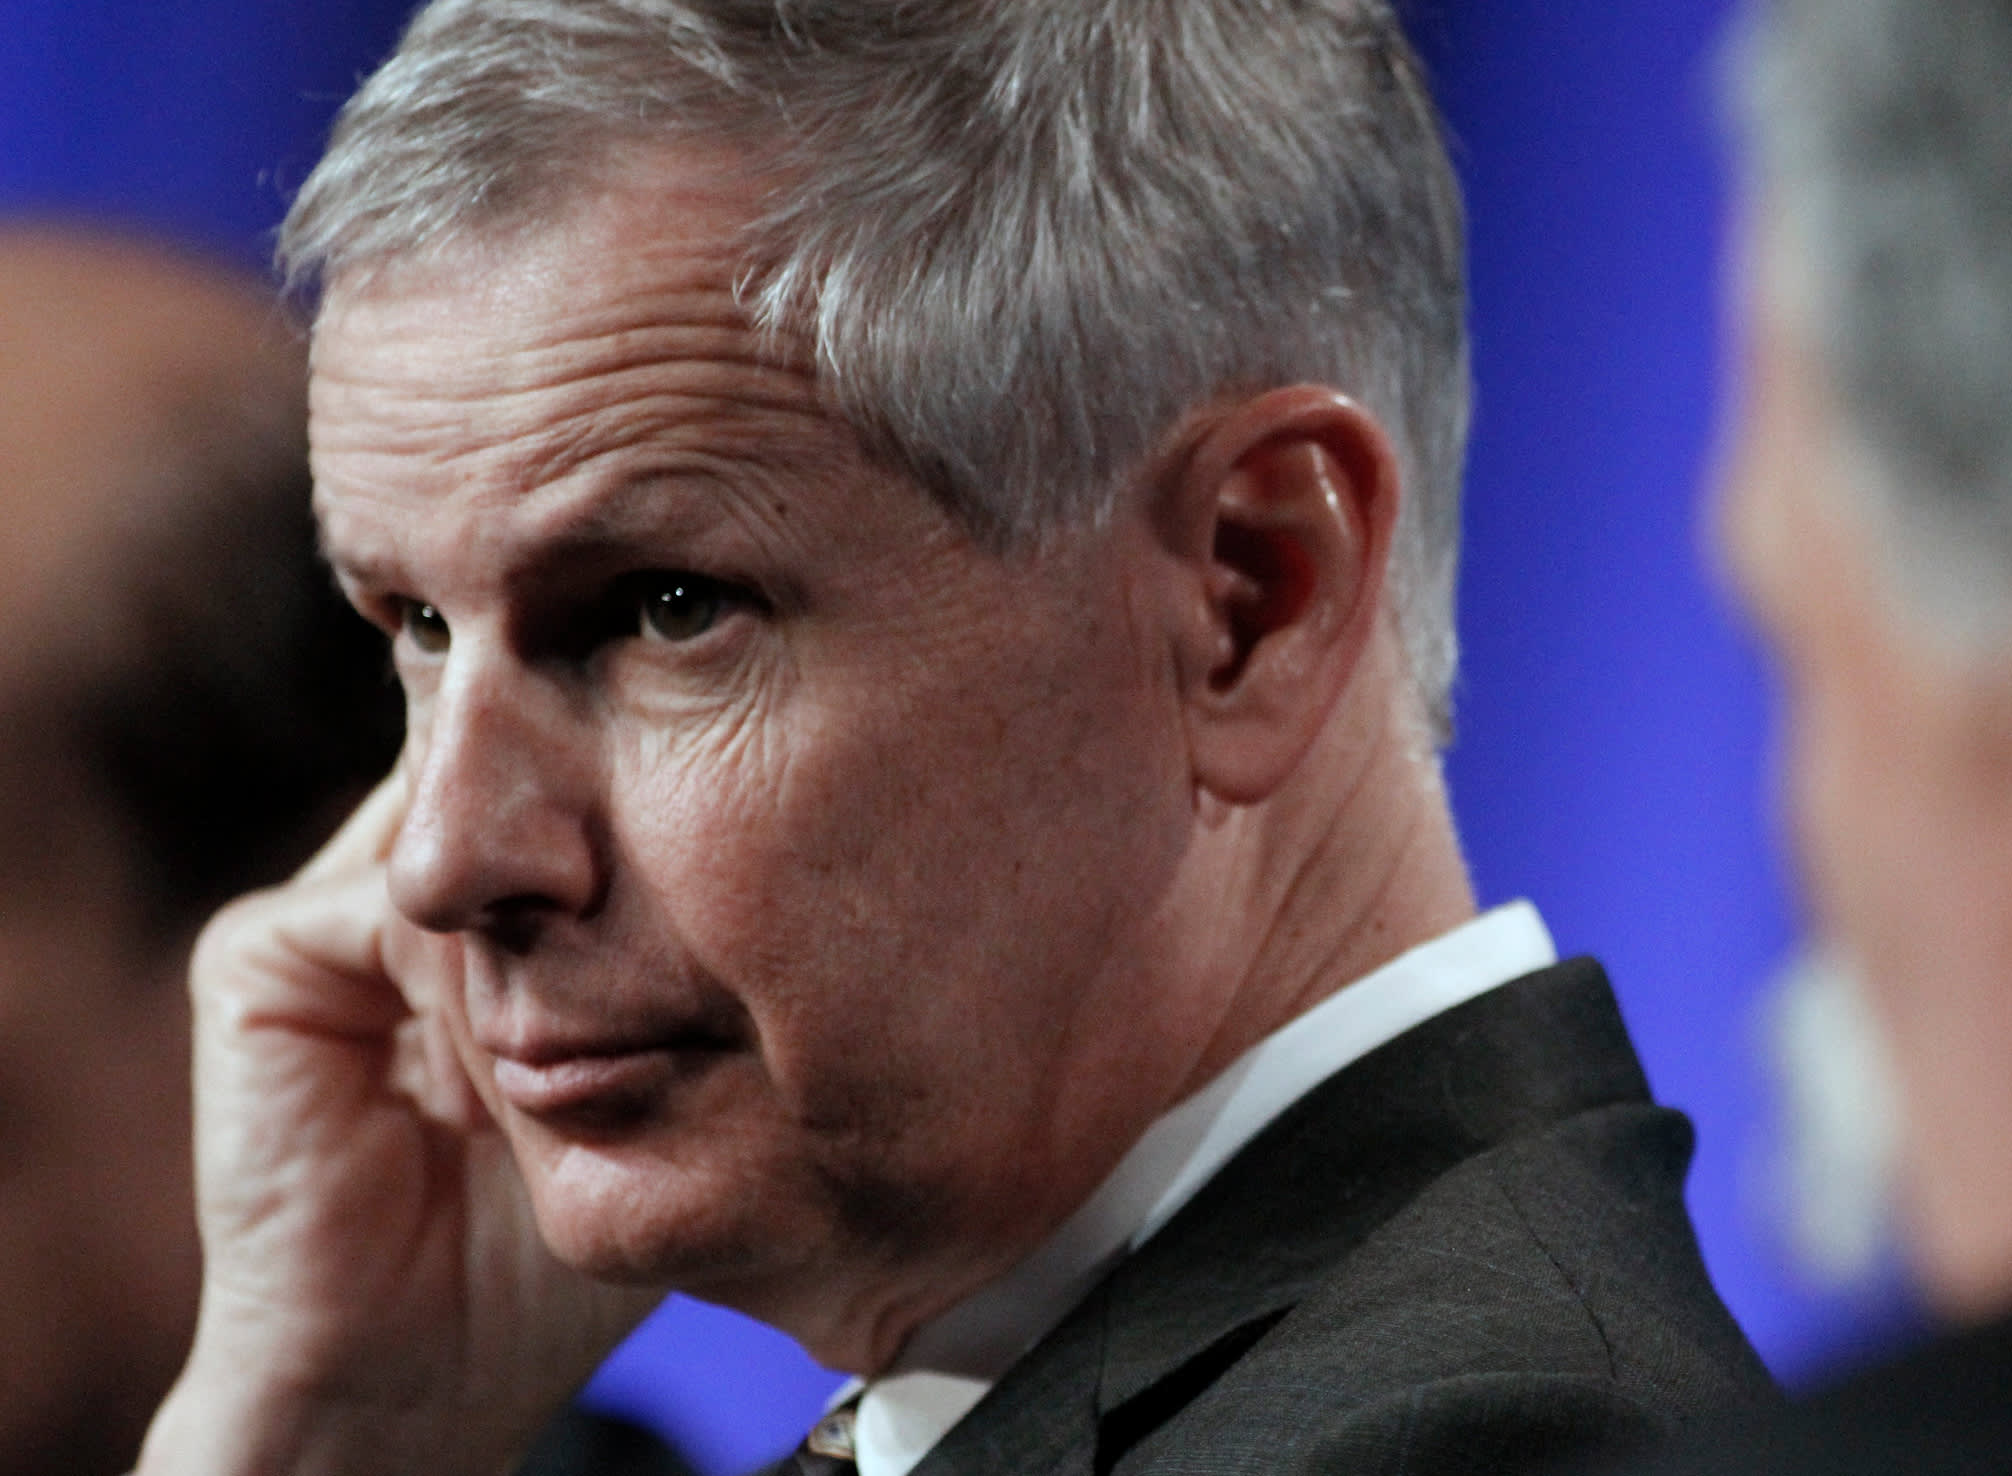 Dish Network and its billionaire co-founder Charlie Ergen finally have a plan